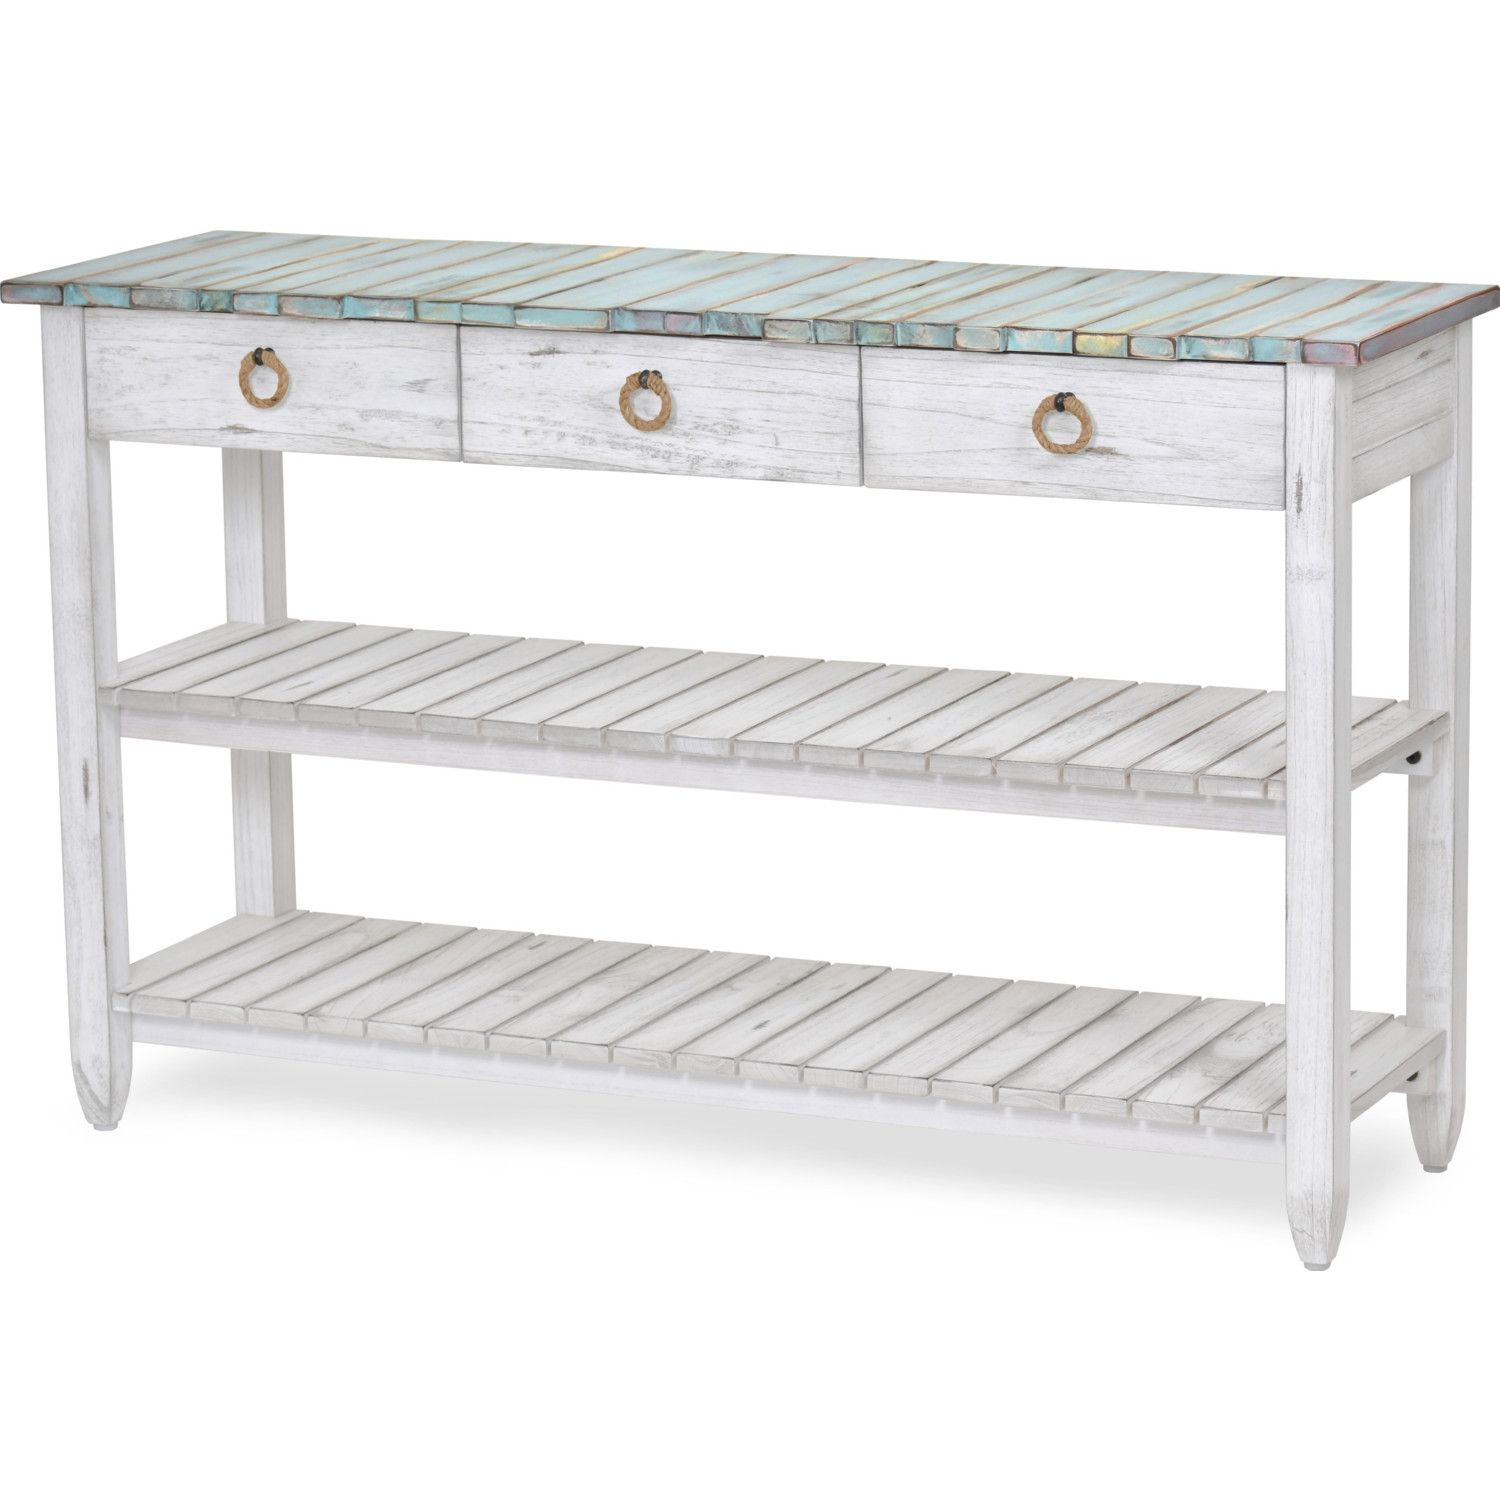 Sea Winds B78219 Dbleu Wh Picket Fence 52 Tv Stand Console Table